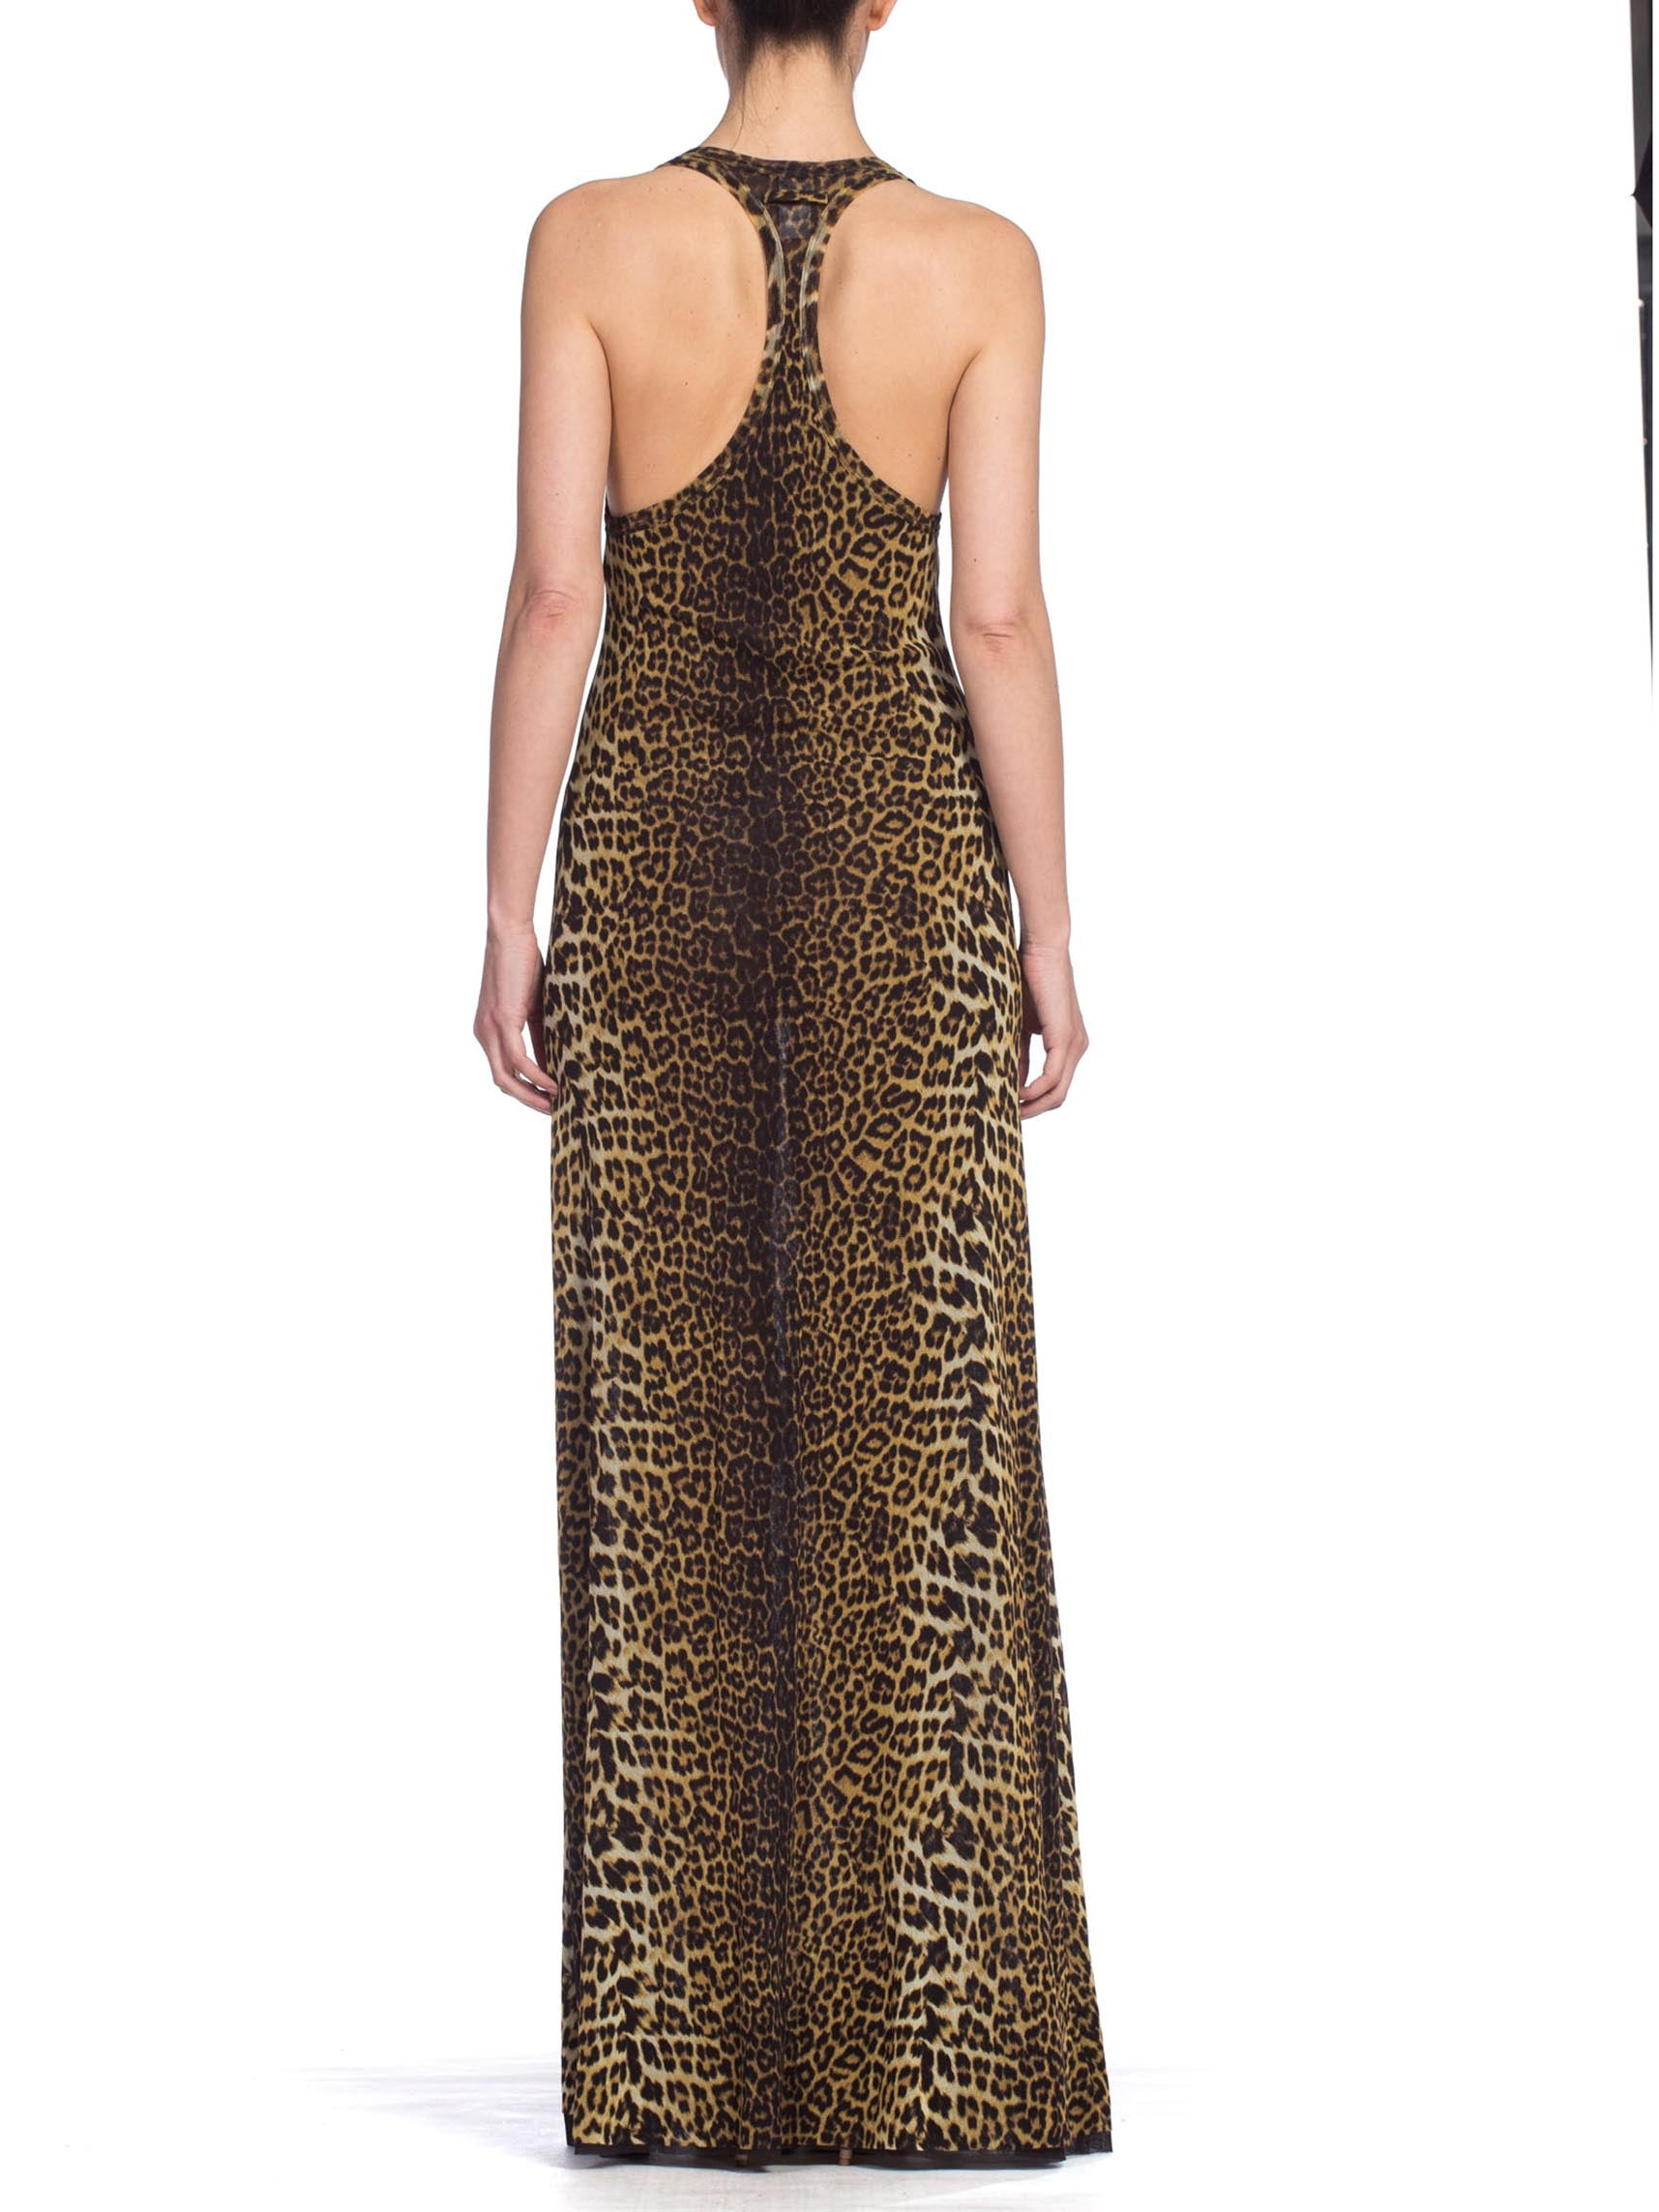 1990's Jean Paul Gaultier Leopard Print Maxi Dress With Floral Embroidery